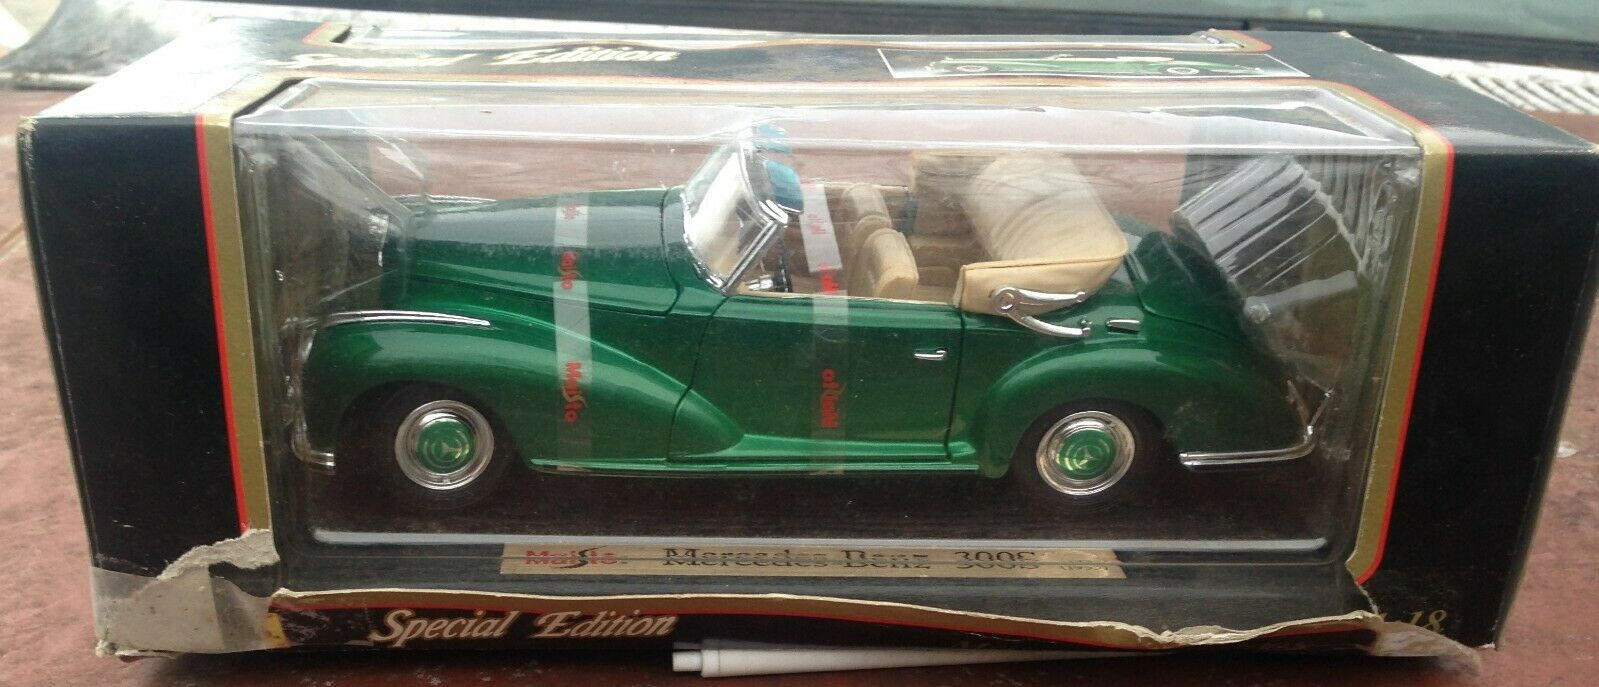 1955 MERCEDES-BENZ 300 S Maisto Special edition 1 18 Scale Diecast Model